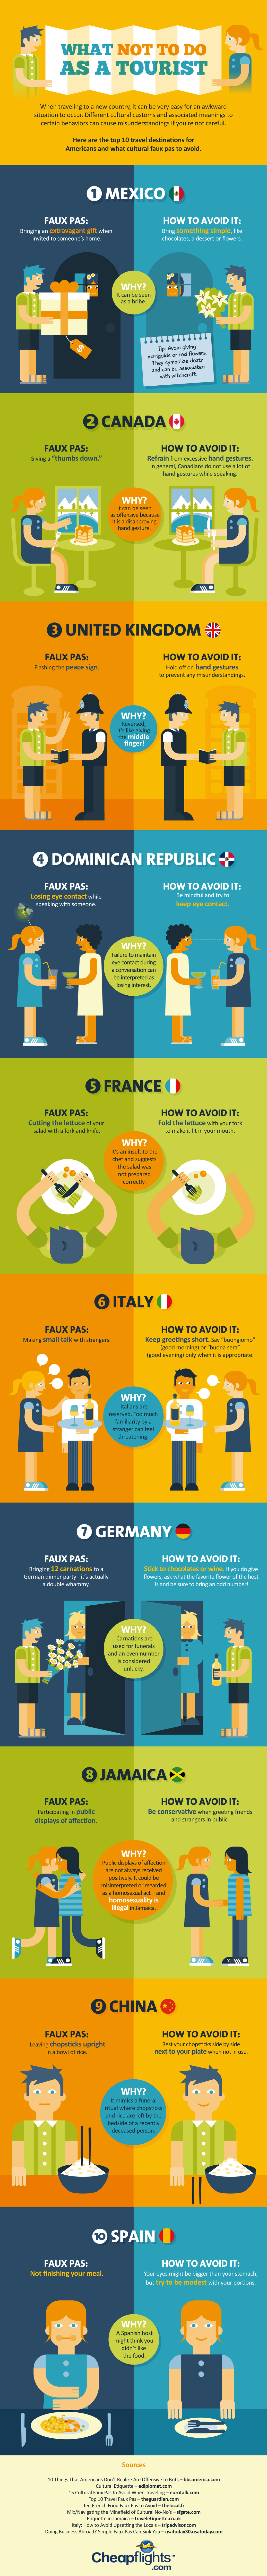 What not to do as a tourist [INFOGRAPHIC] 1